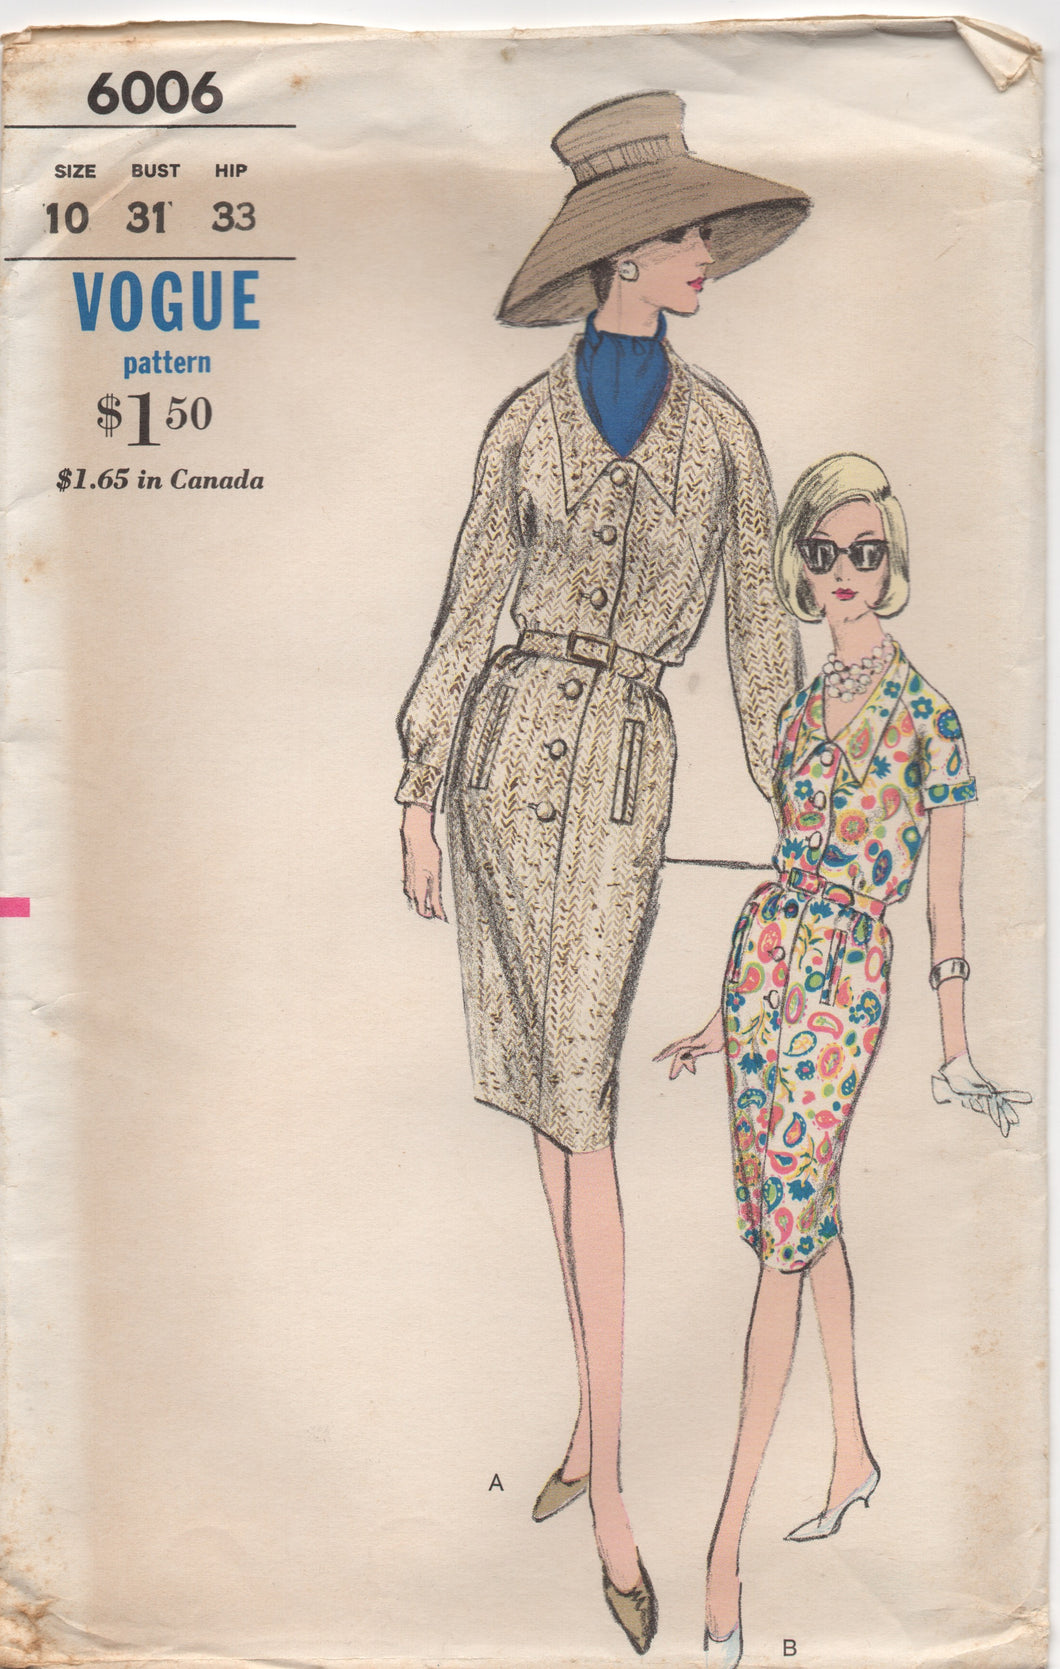 1960's Vogue Shirtwaist Dress with Pockets - Bust 31